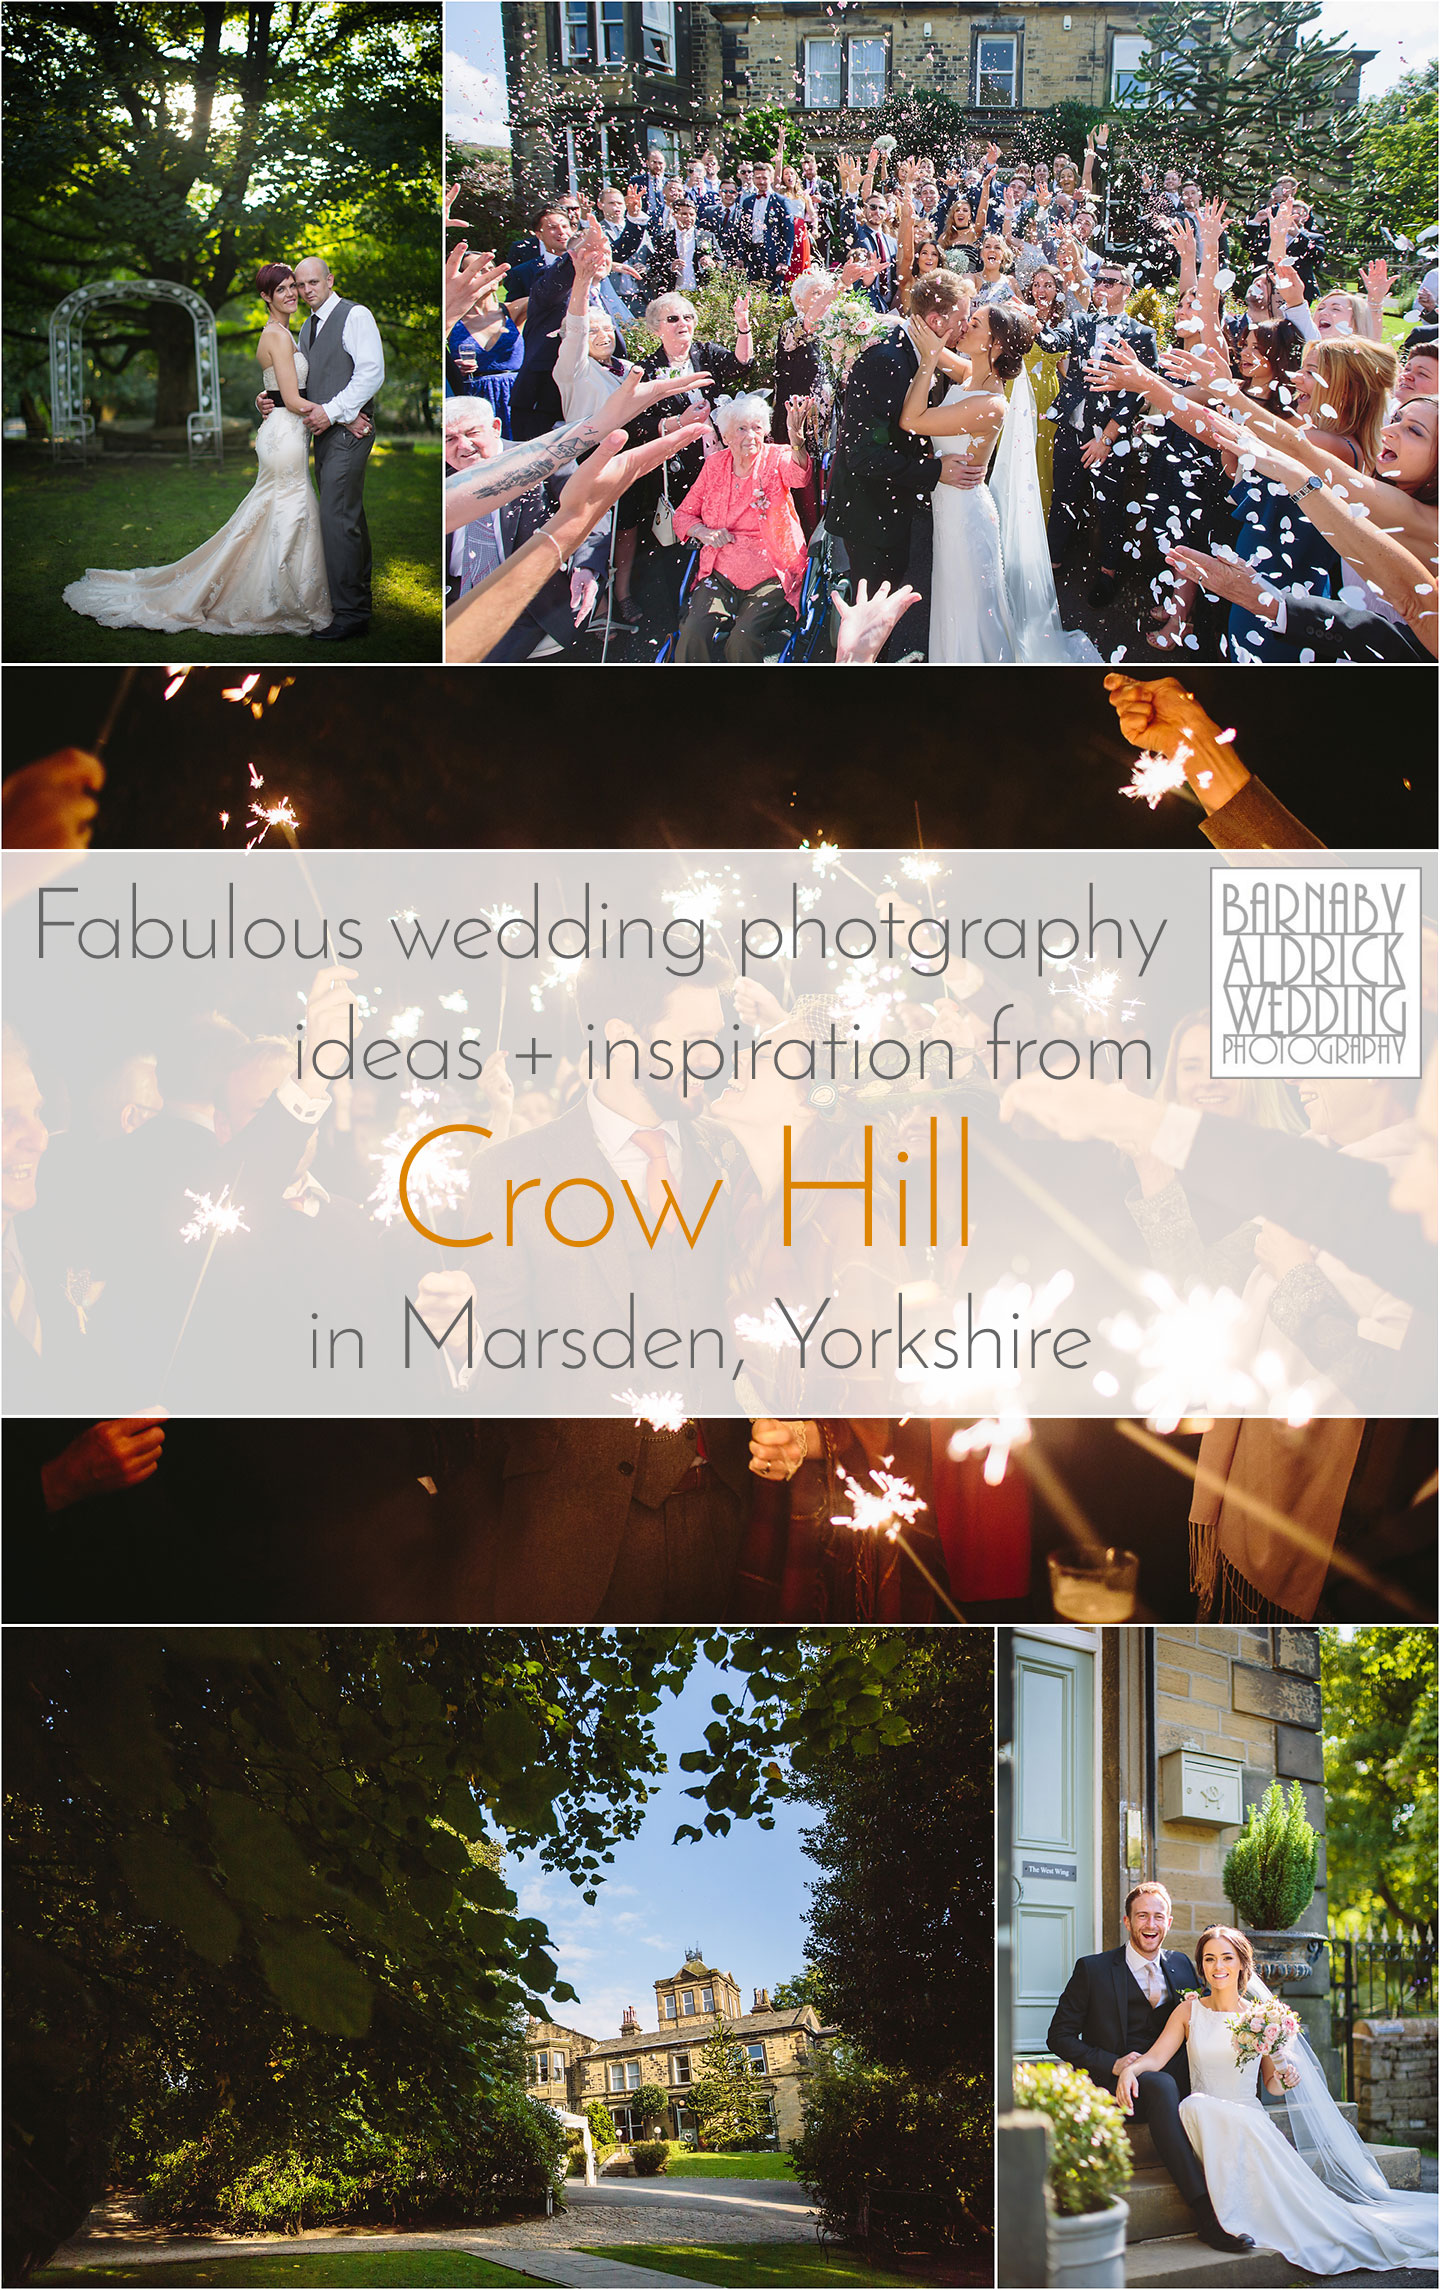 Wedding Photos ideas and inspiration from Crow Hill in Marsden near Huddersfield by a West Yorkshire photographer